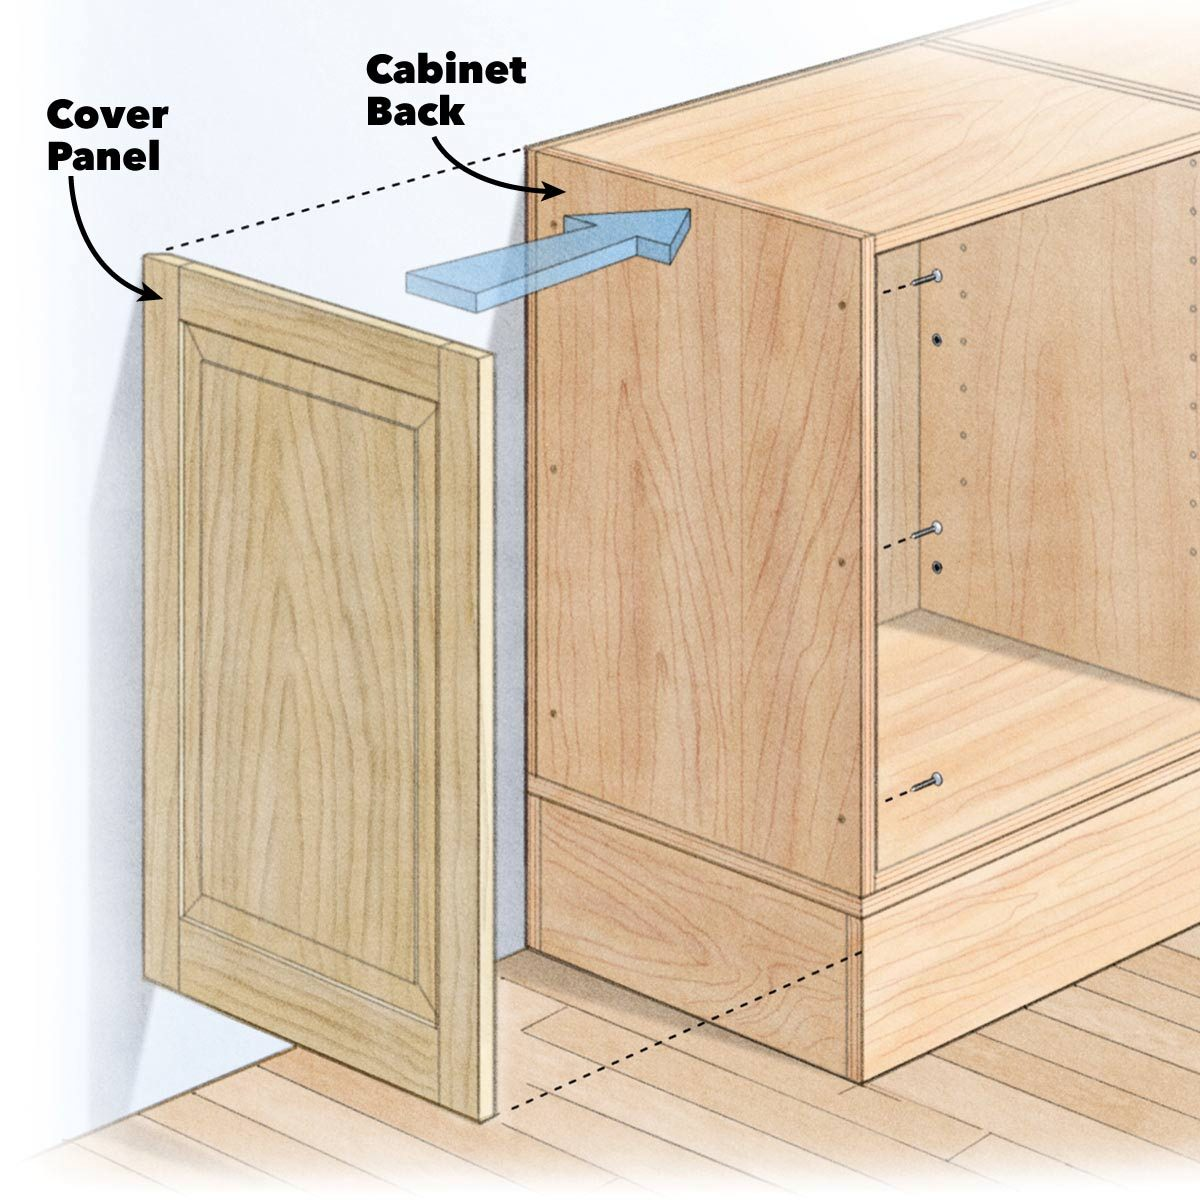 Cabinet Backing Material